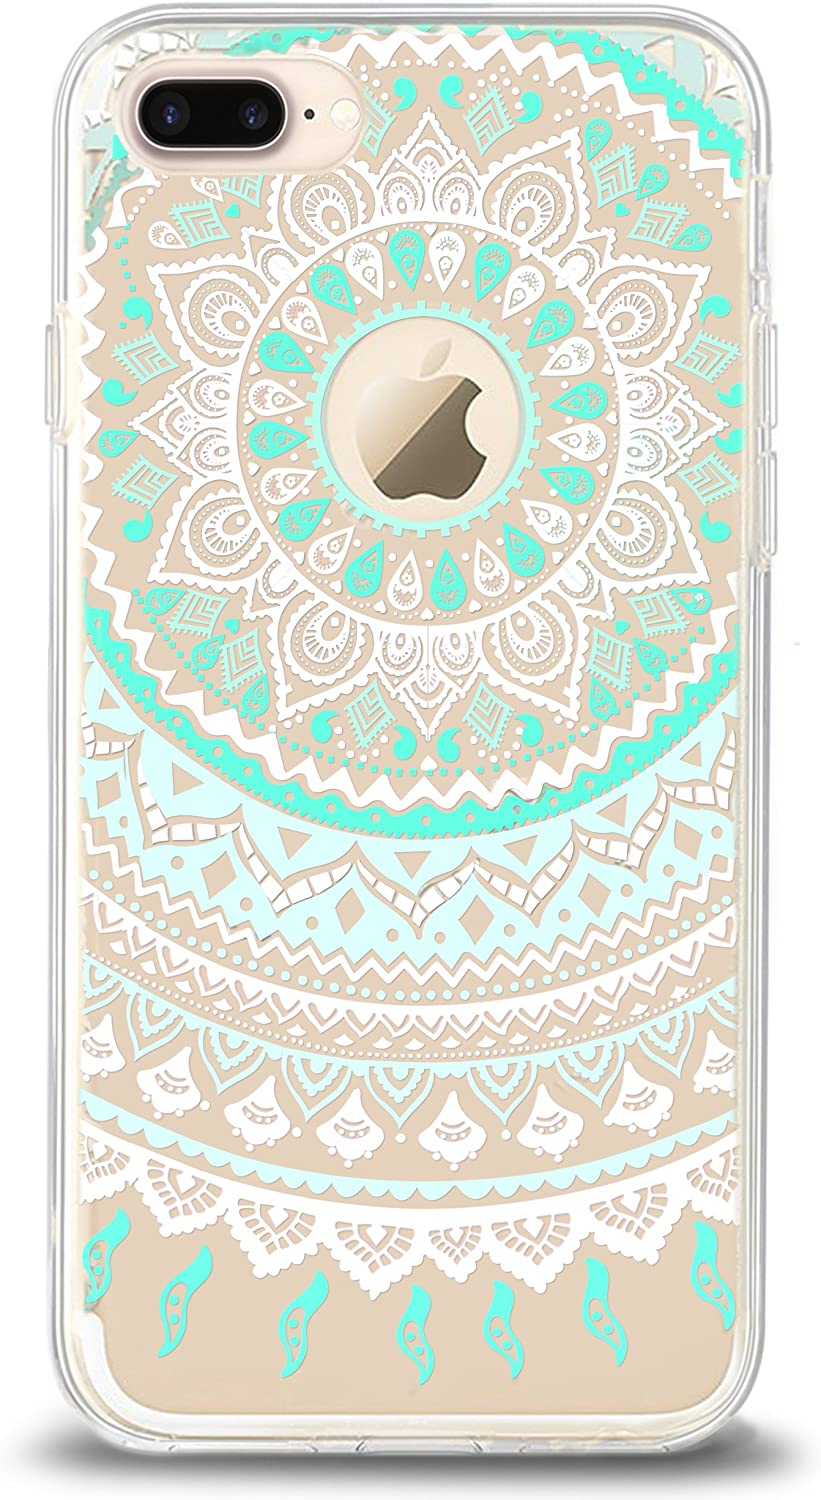 Ailun Phone Case Compatible with iPhone 8 Plus 7 Plus Solid Acrylic Back Reinforced Soft Clear TPU Frame Ultra Slim Shock Absorption Bumper Anti Scratch Cover Mandala MintGreen